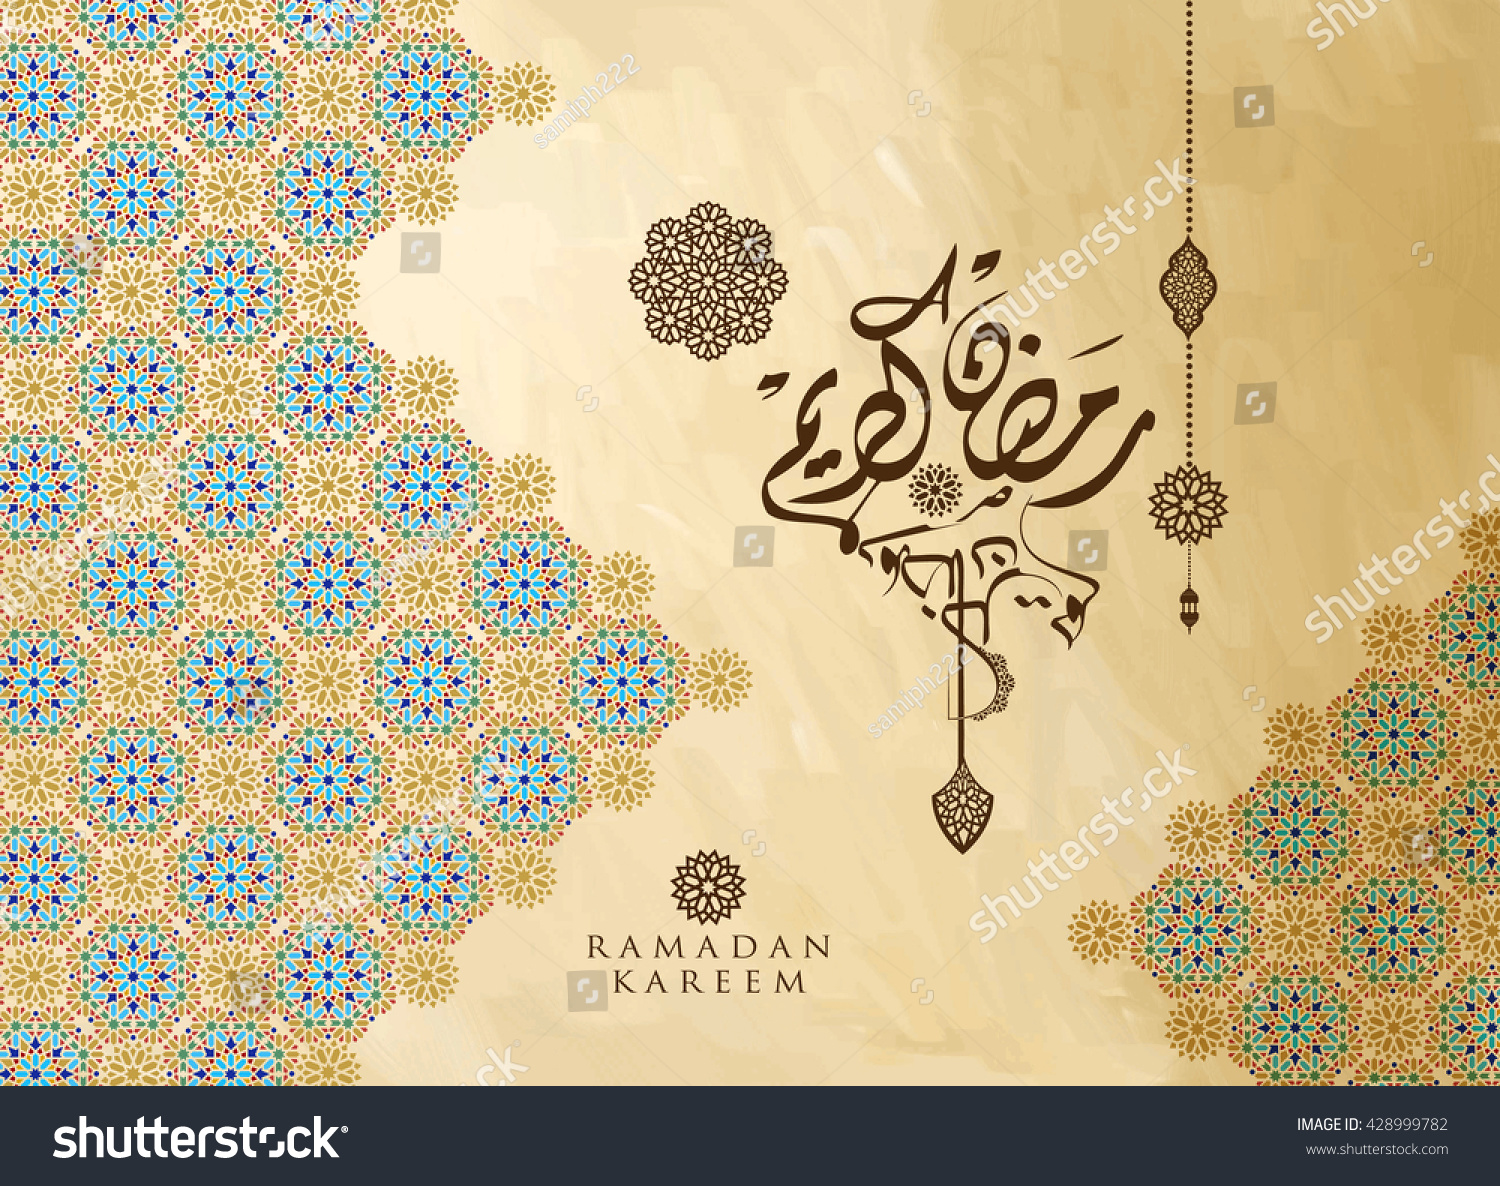 Ramadan Kareem Greeting Background Islamic Vector Stock